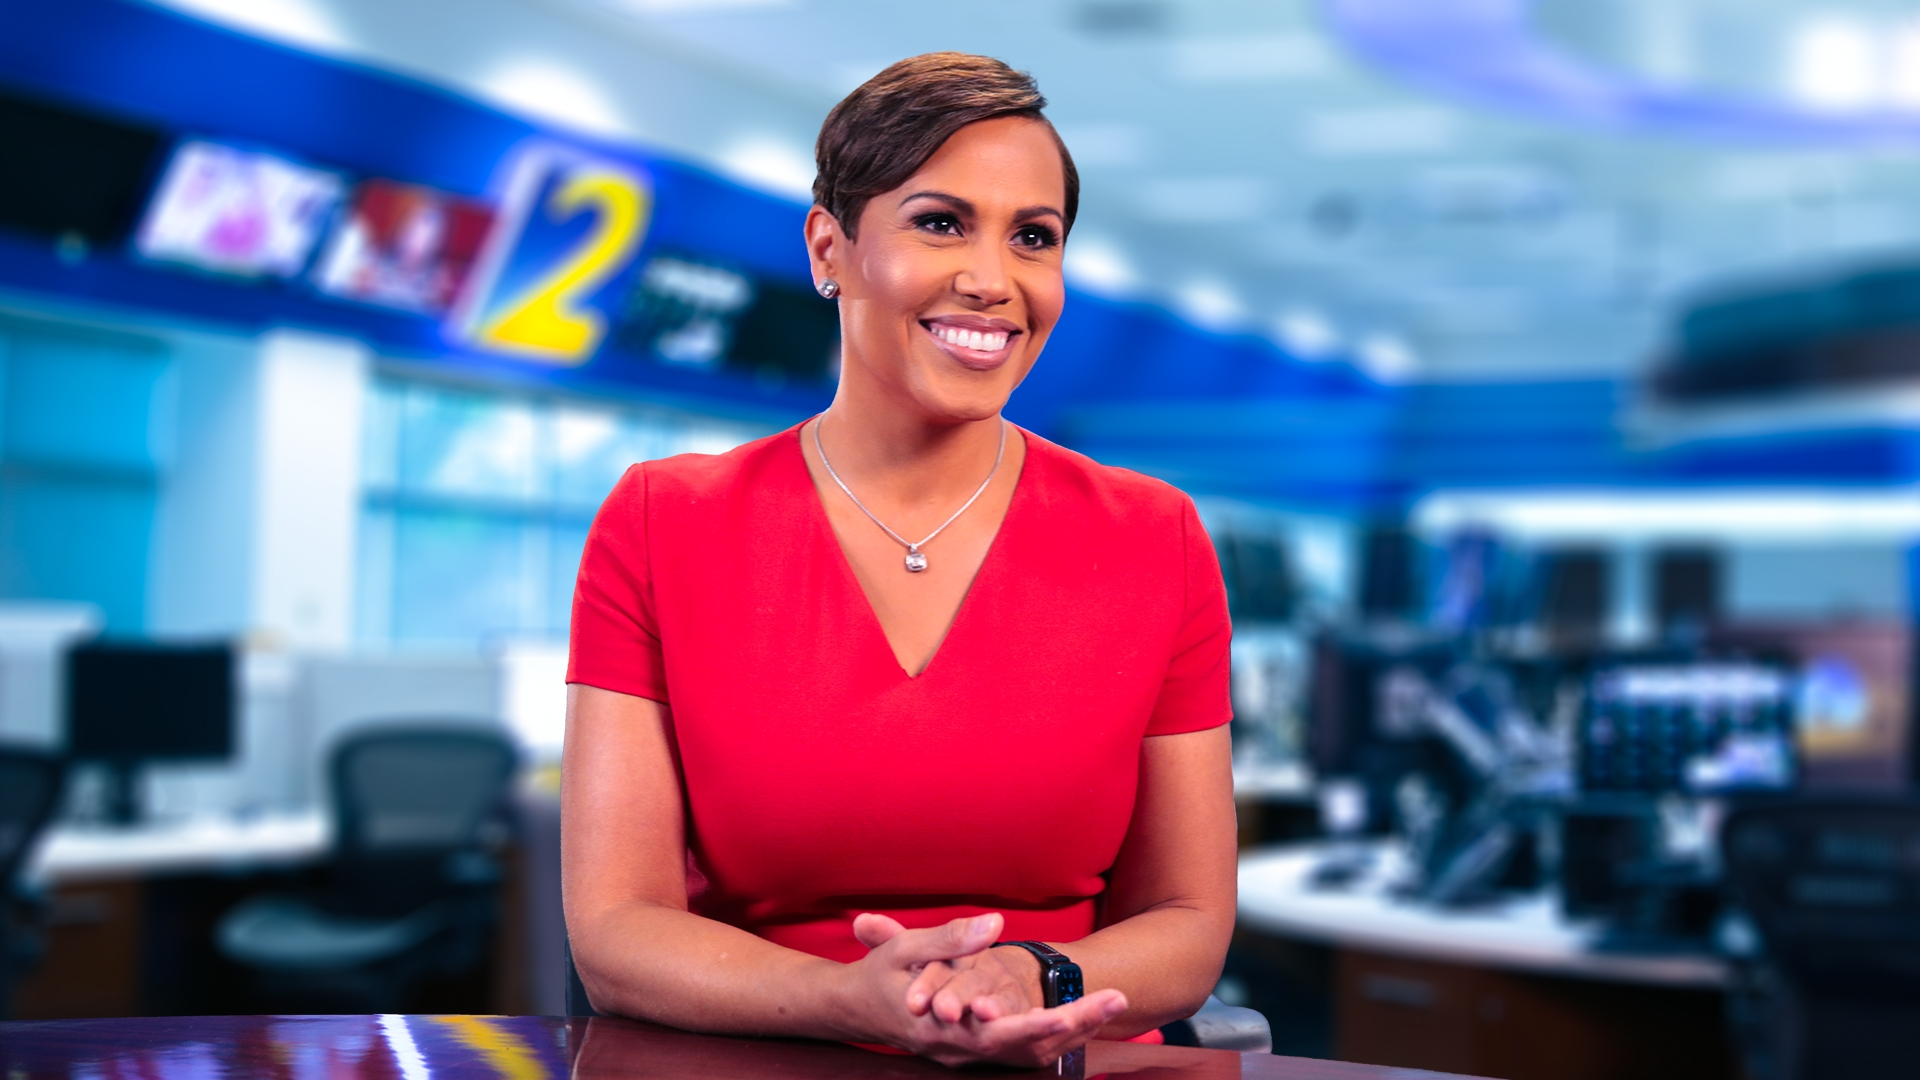 Channel 2's Jovita Moore to undergo surgery for brain tumor  image